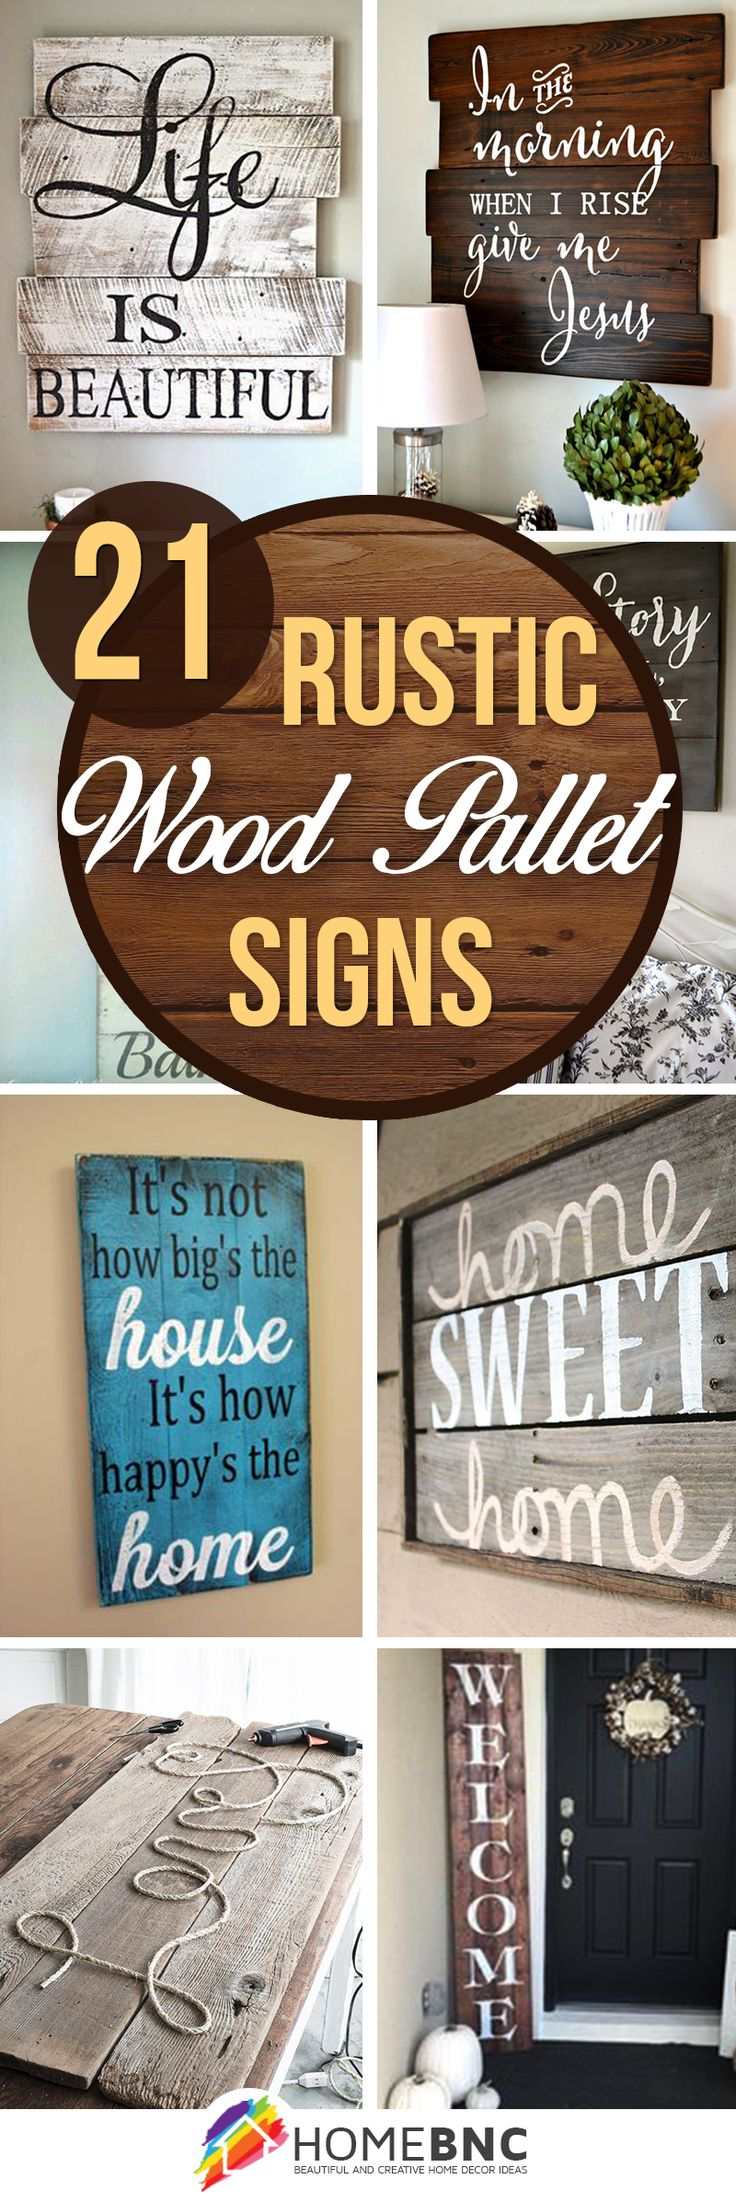 Painted wooden shapes for crafts - 21 Wood Signs To Add Rustic Glam To Your Decor